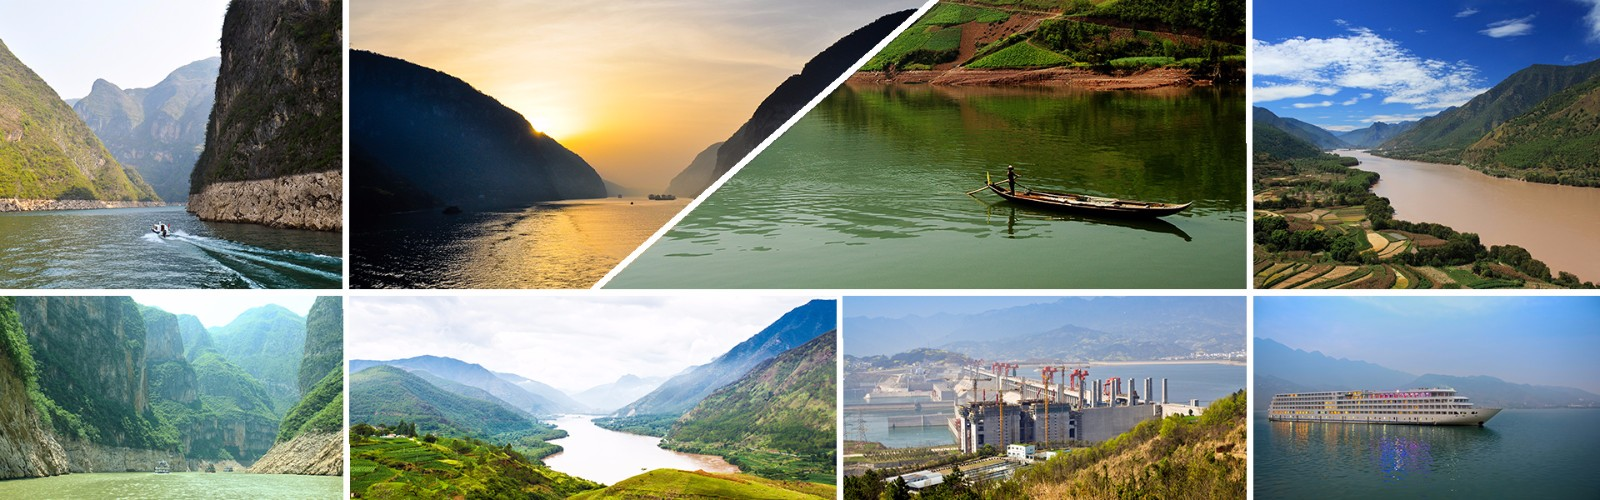 The Yangtze River Holidays